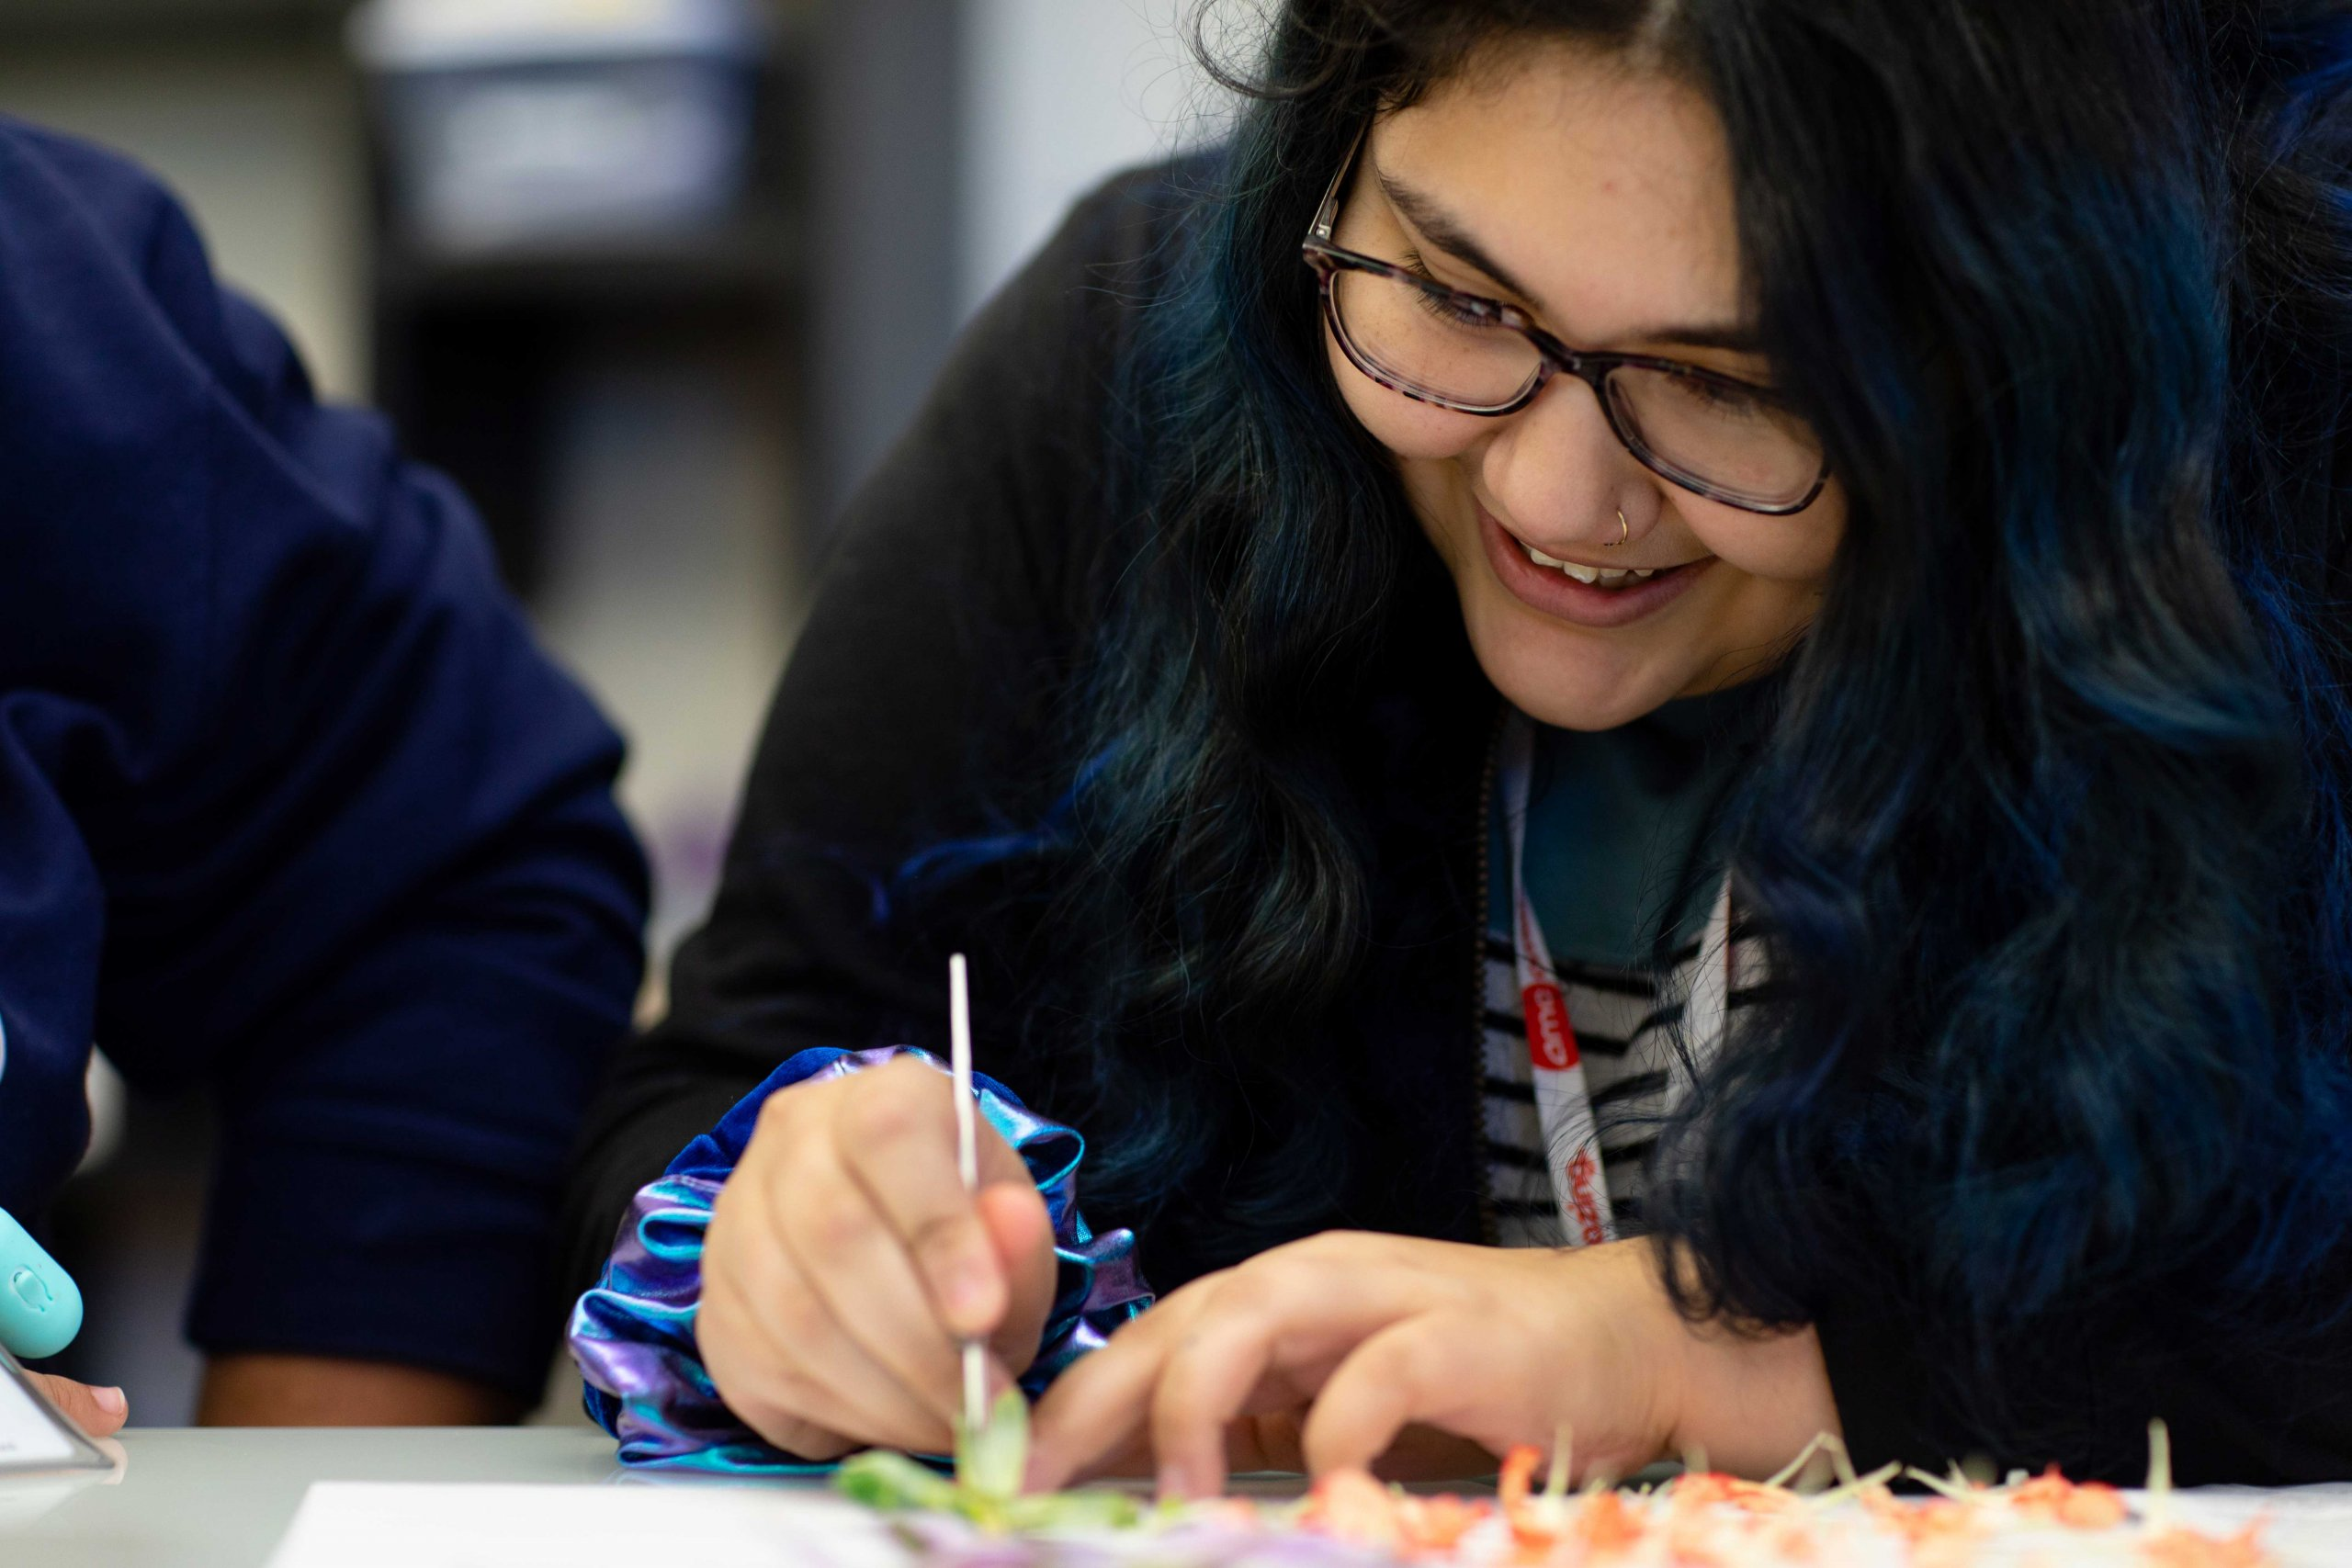 A smiling student uses a scalpel to cut apart a flower. The dissected stem and petals are laid out in front of her.